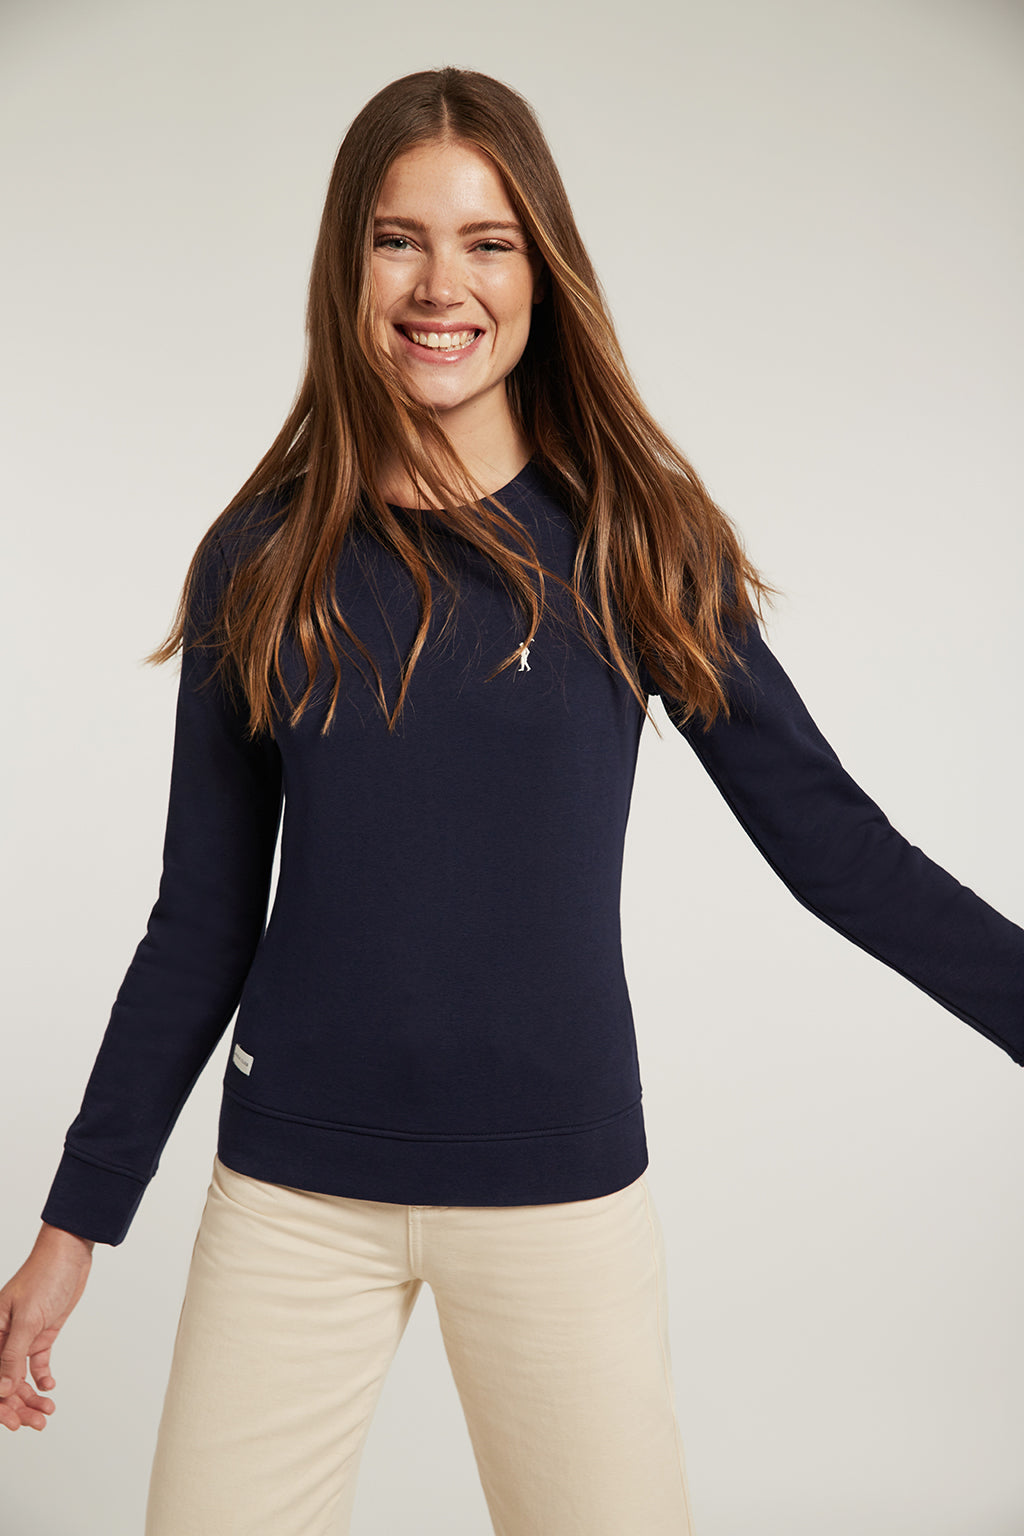 Navy blue organic sweatshirt with embroidered logo